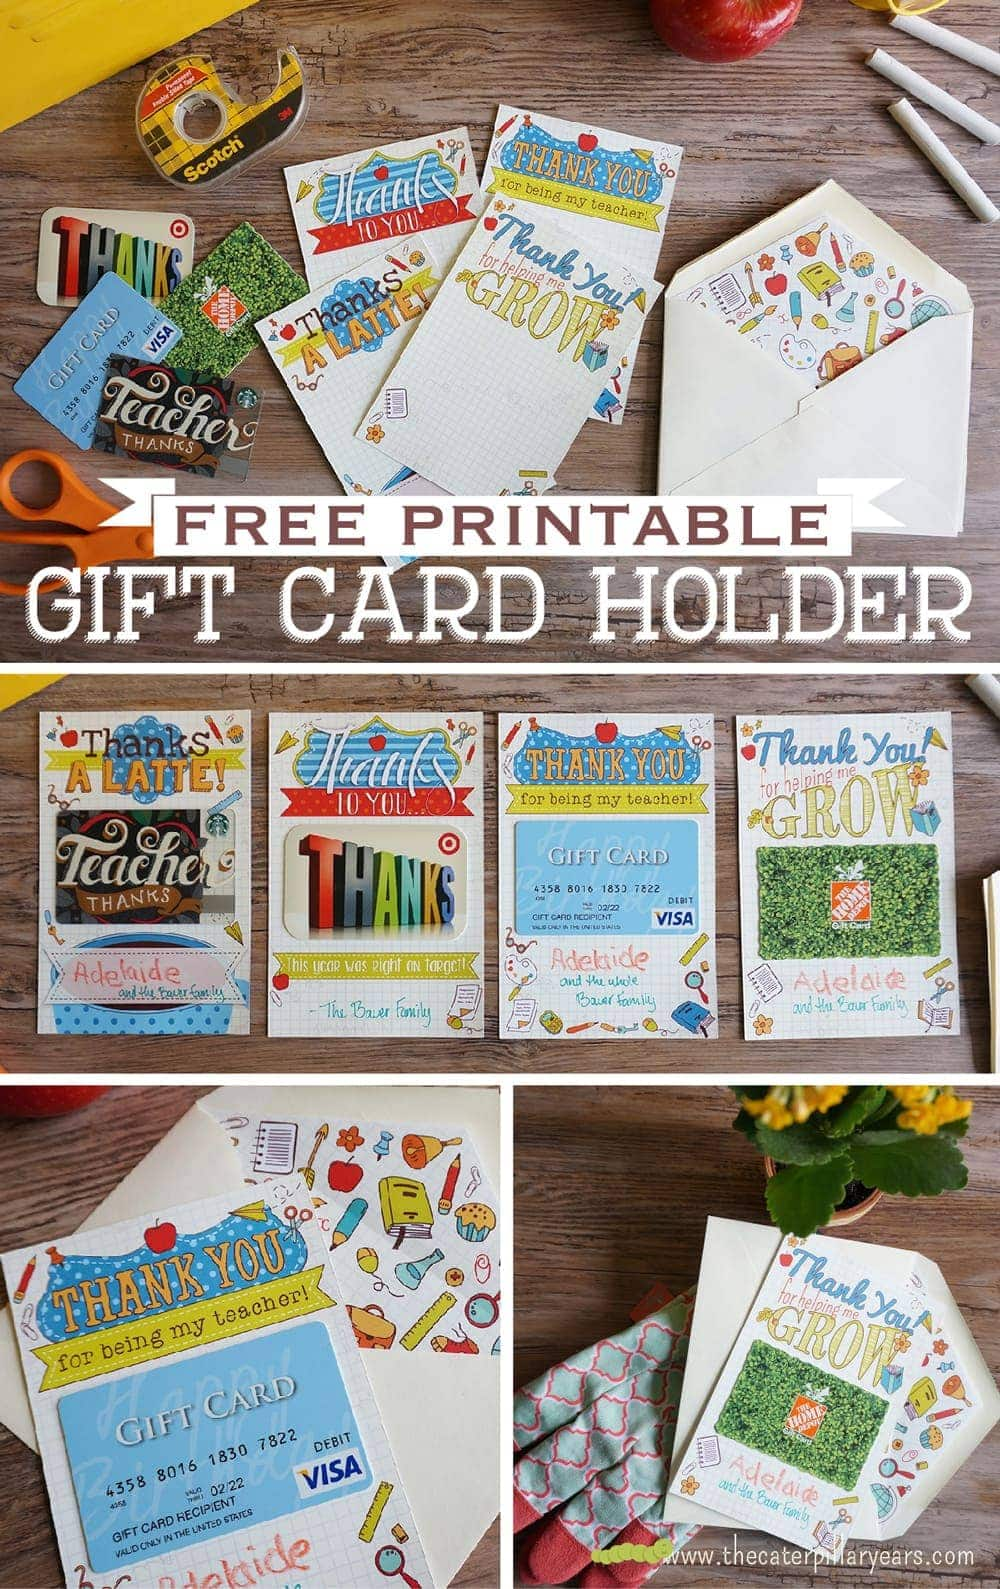 Free Printable Gift Card Holder for Teachers! Great end-of-year gift idea!